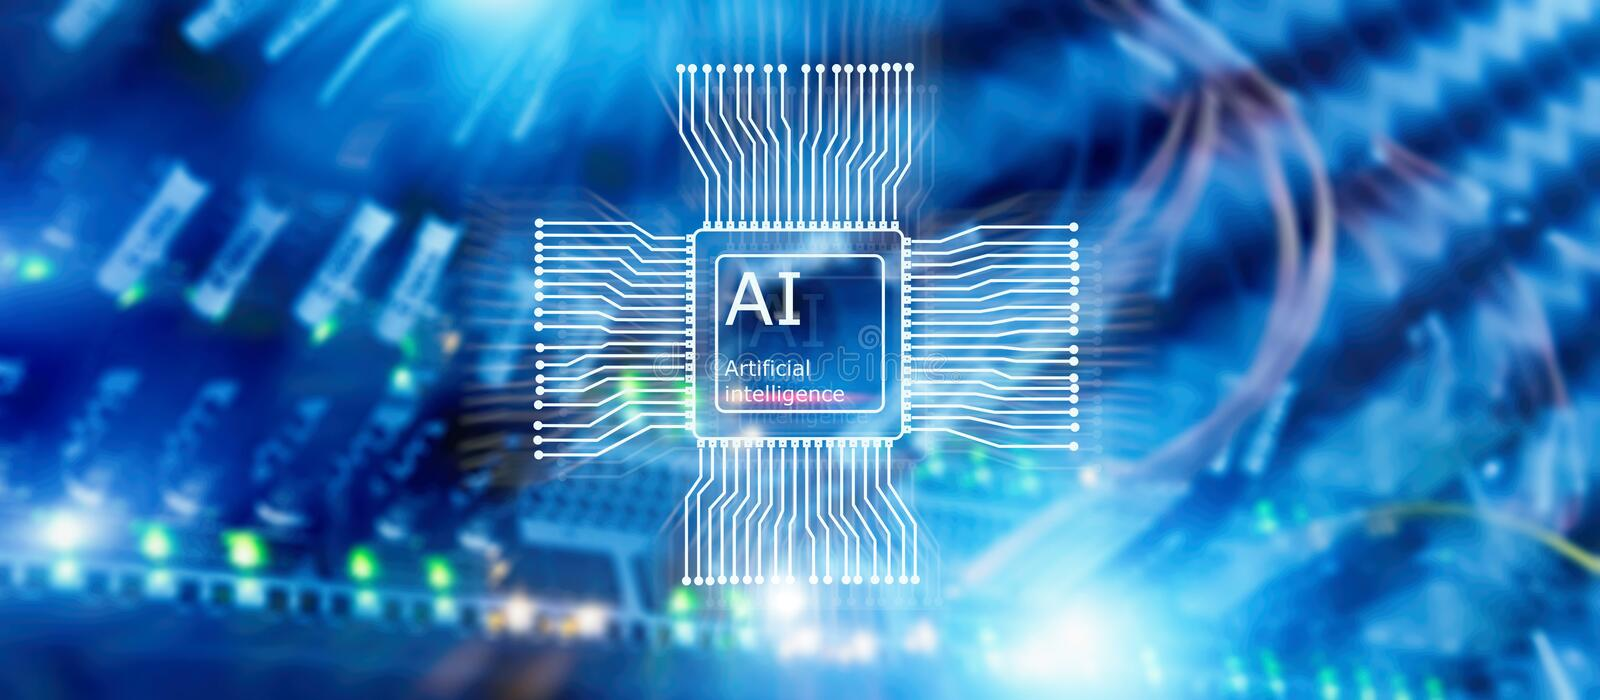 Artificial intelligence Future Technology. Communication Network concept. Blurred modern datacenter background stock images